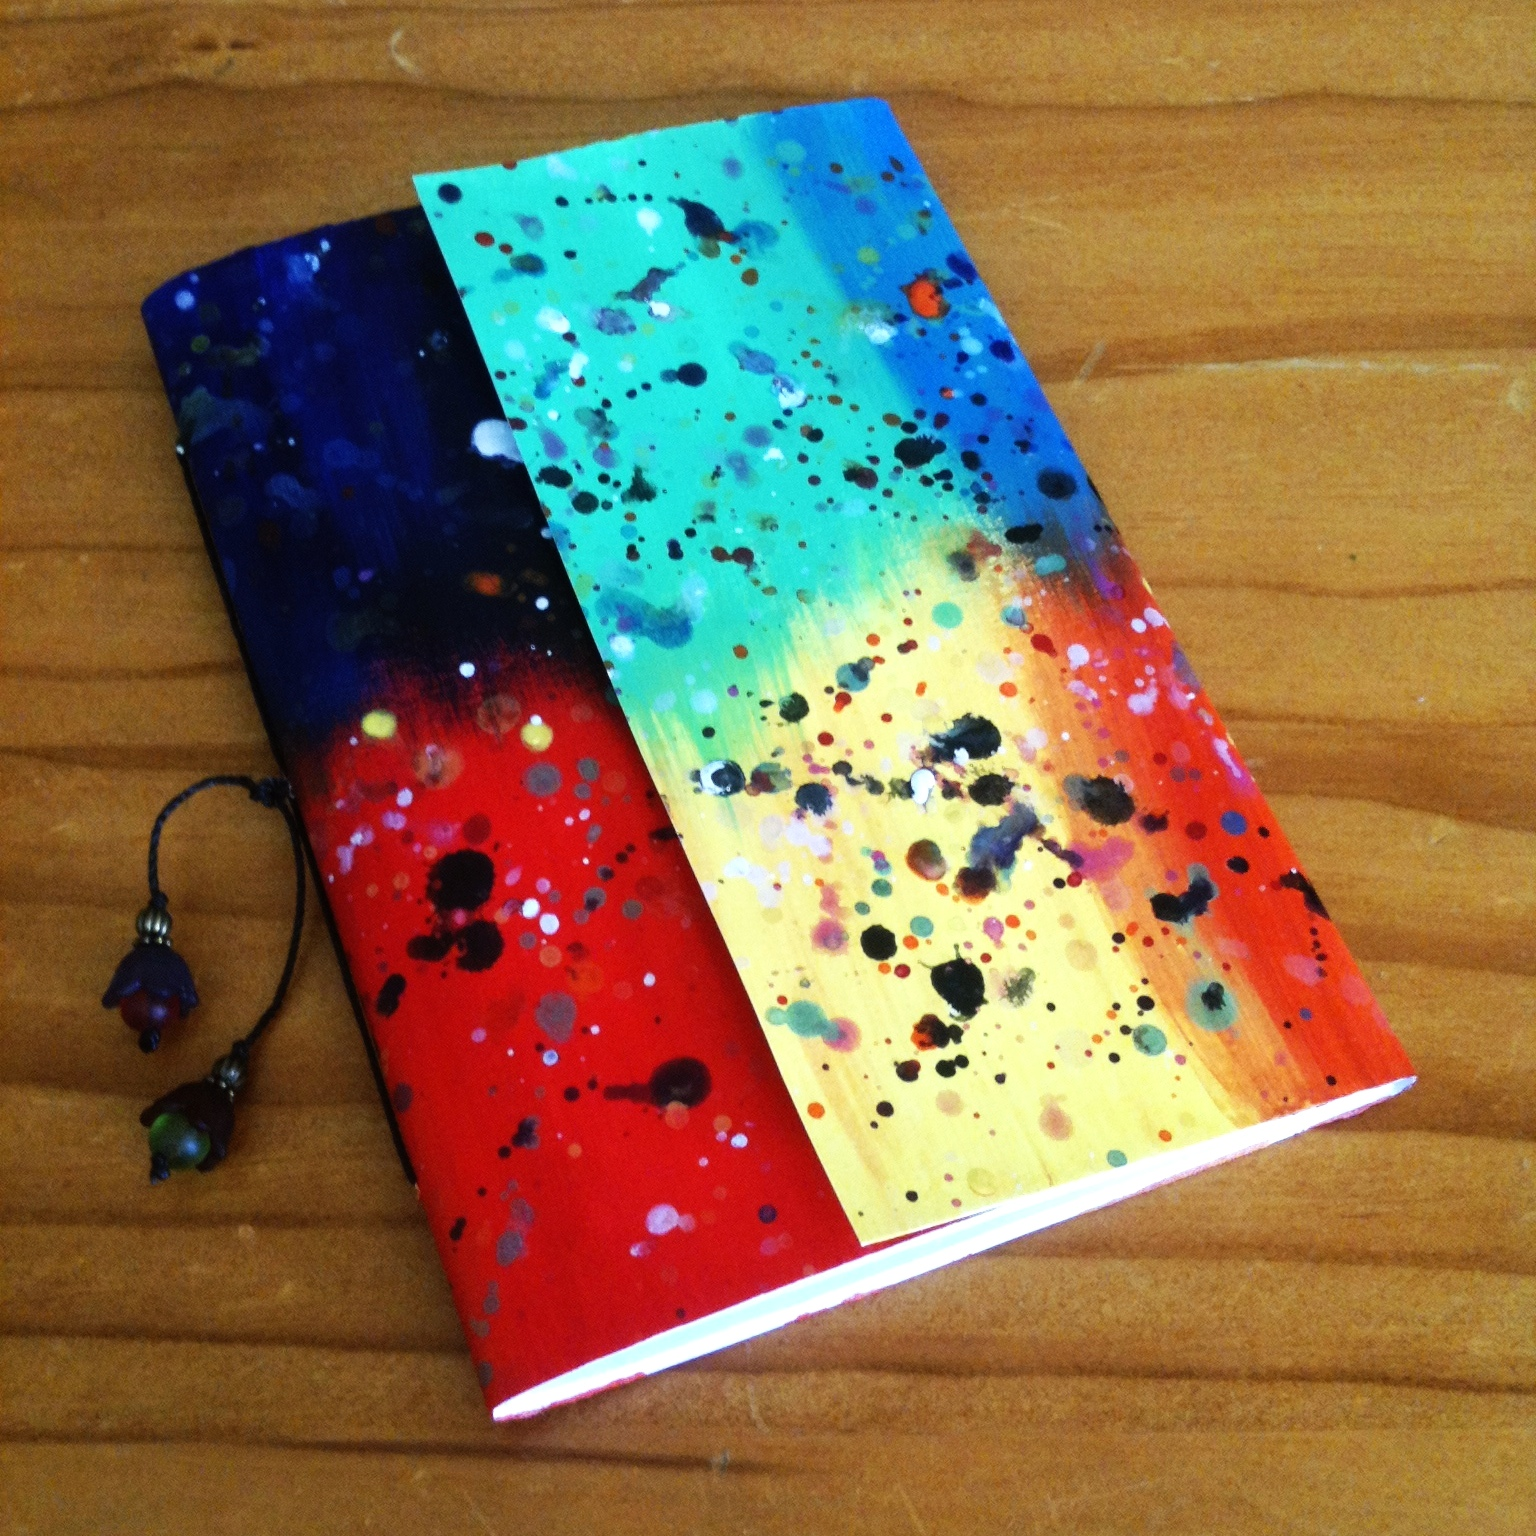 Handmade Book Cover Design ~ Handmade book cover designs imgkid the image